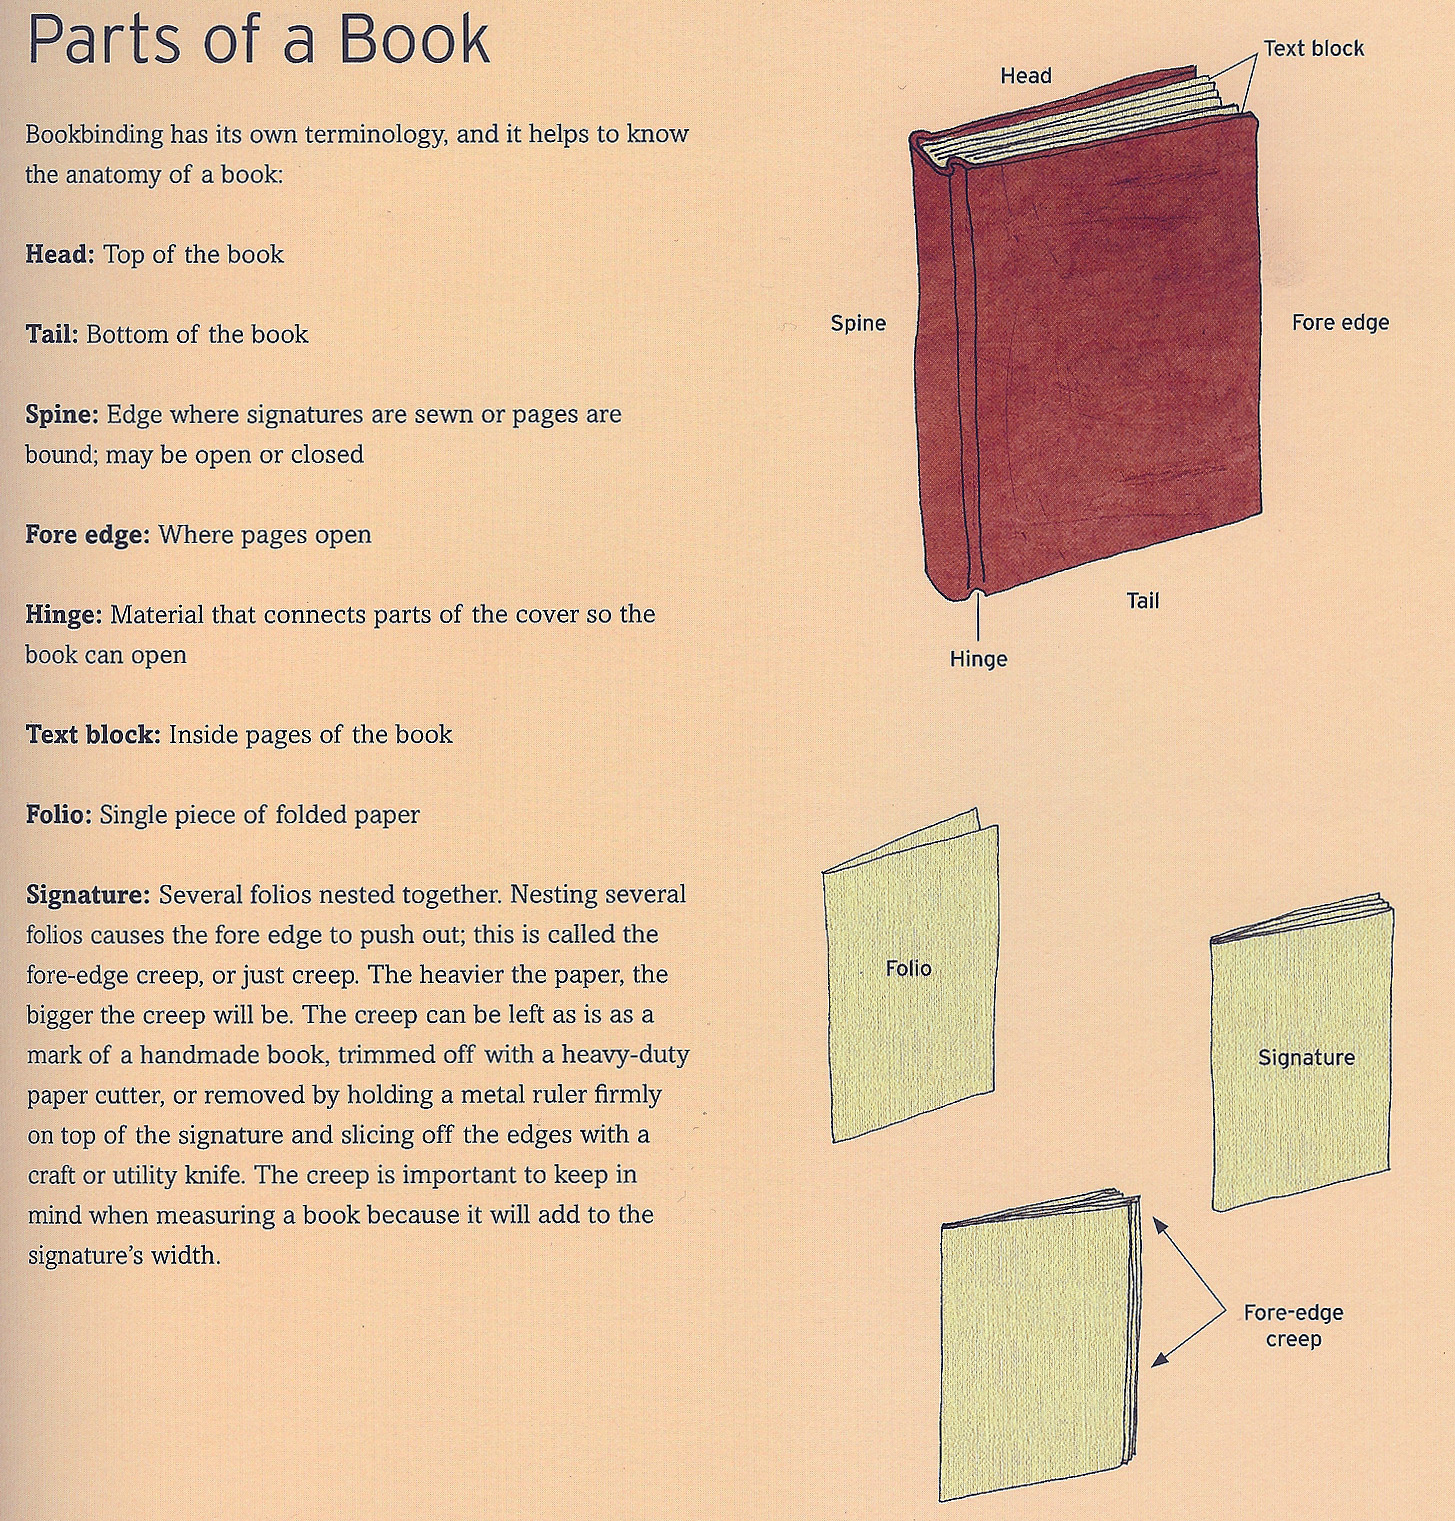 Book Parts Terms What Are The Parts of Book